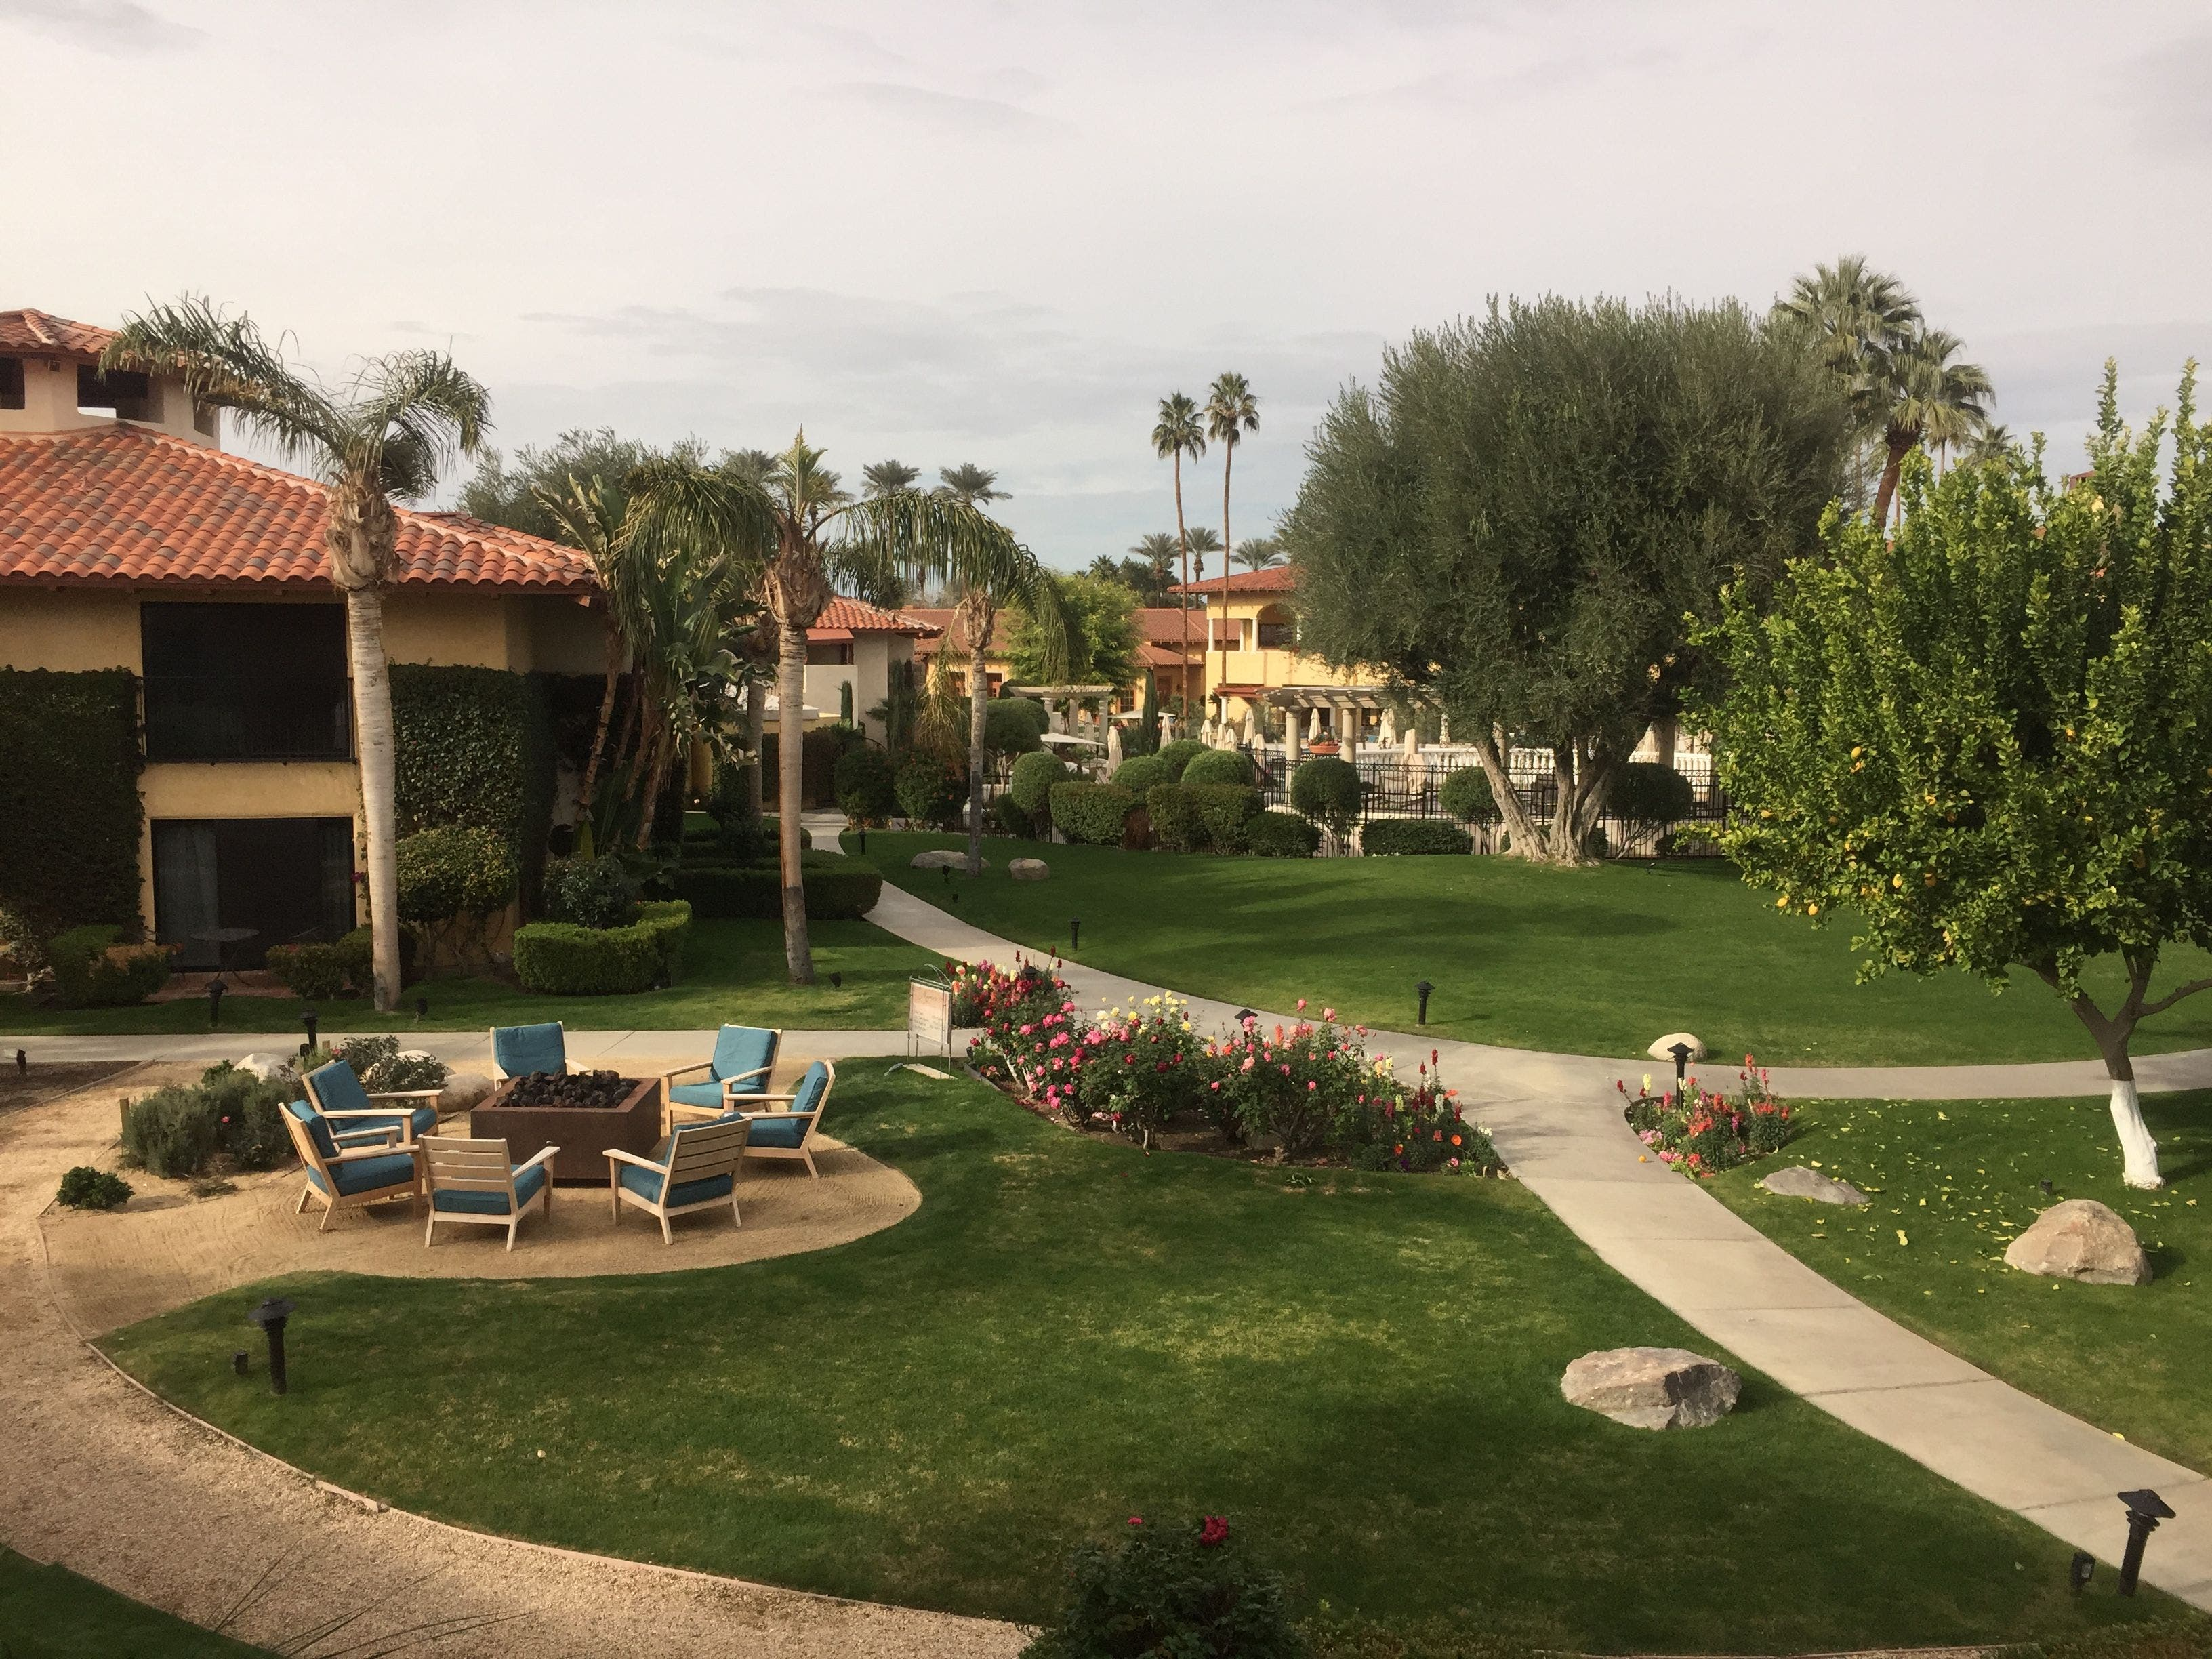 Weekend Getaway In Indian Wells: Where To Stay, Eat and Explore ...